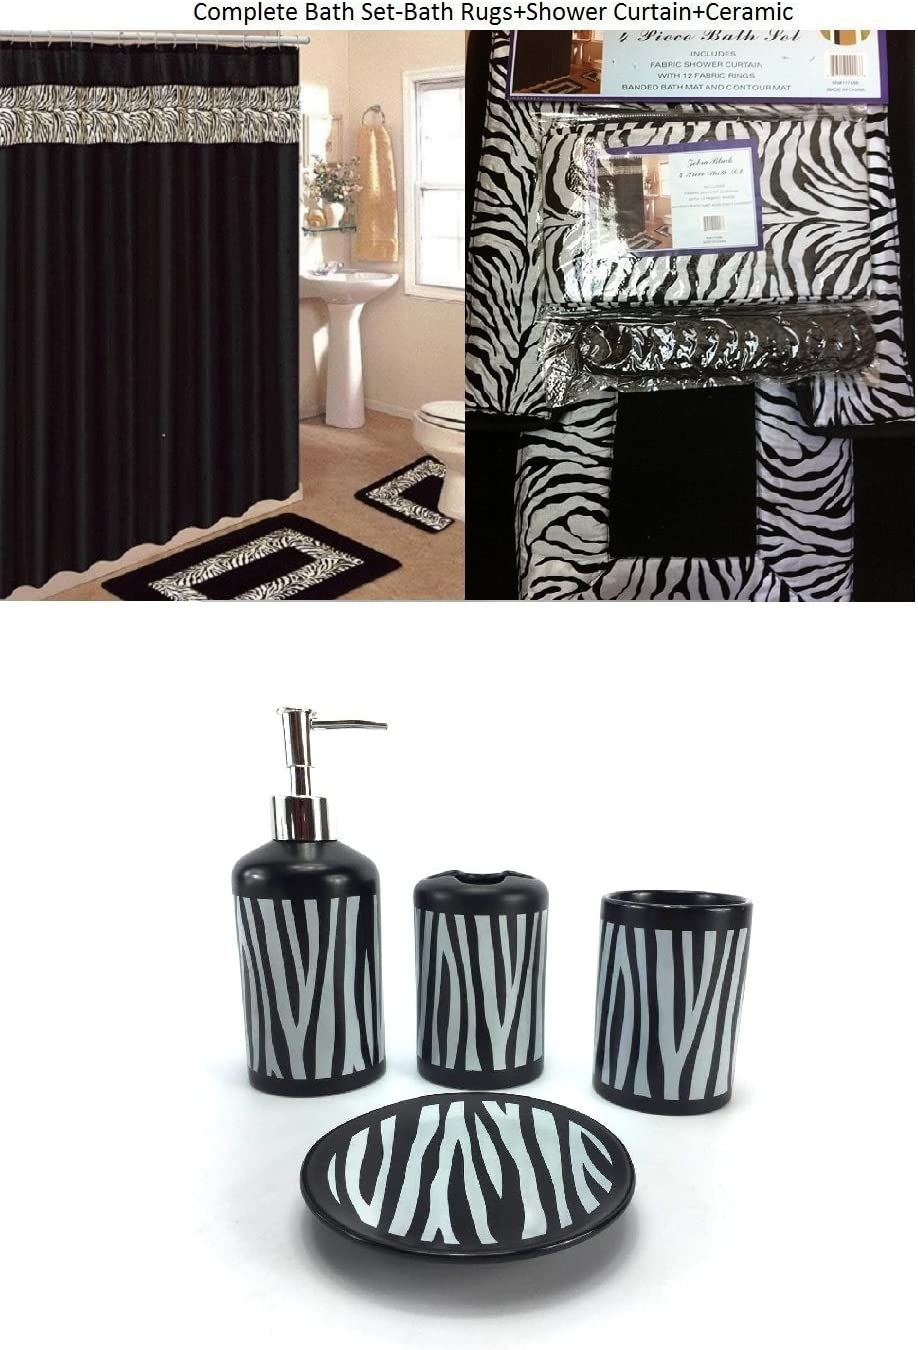 8 Piece Bath Accessory Set Black Zebra Animal Print Bath Rug Set